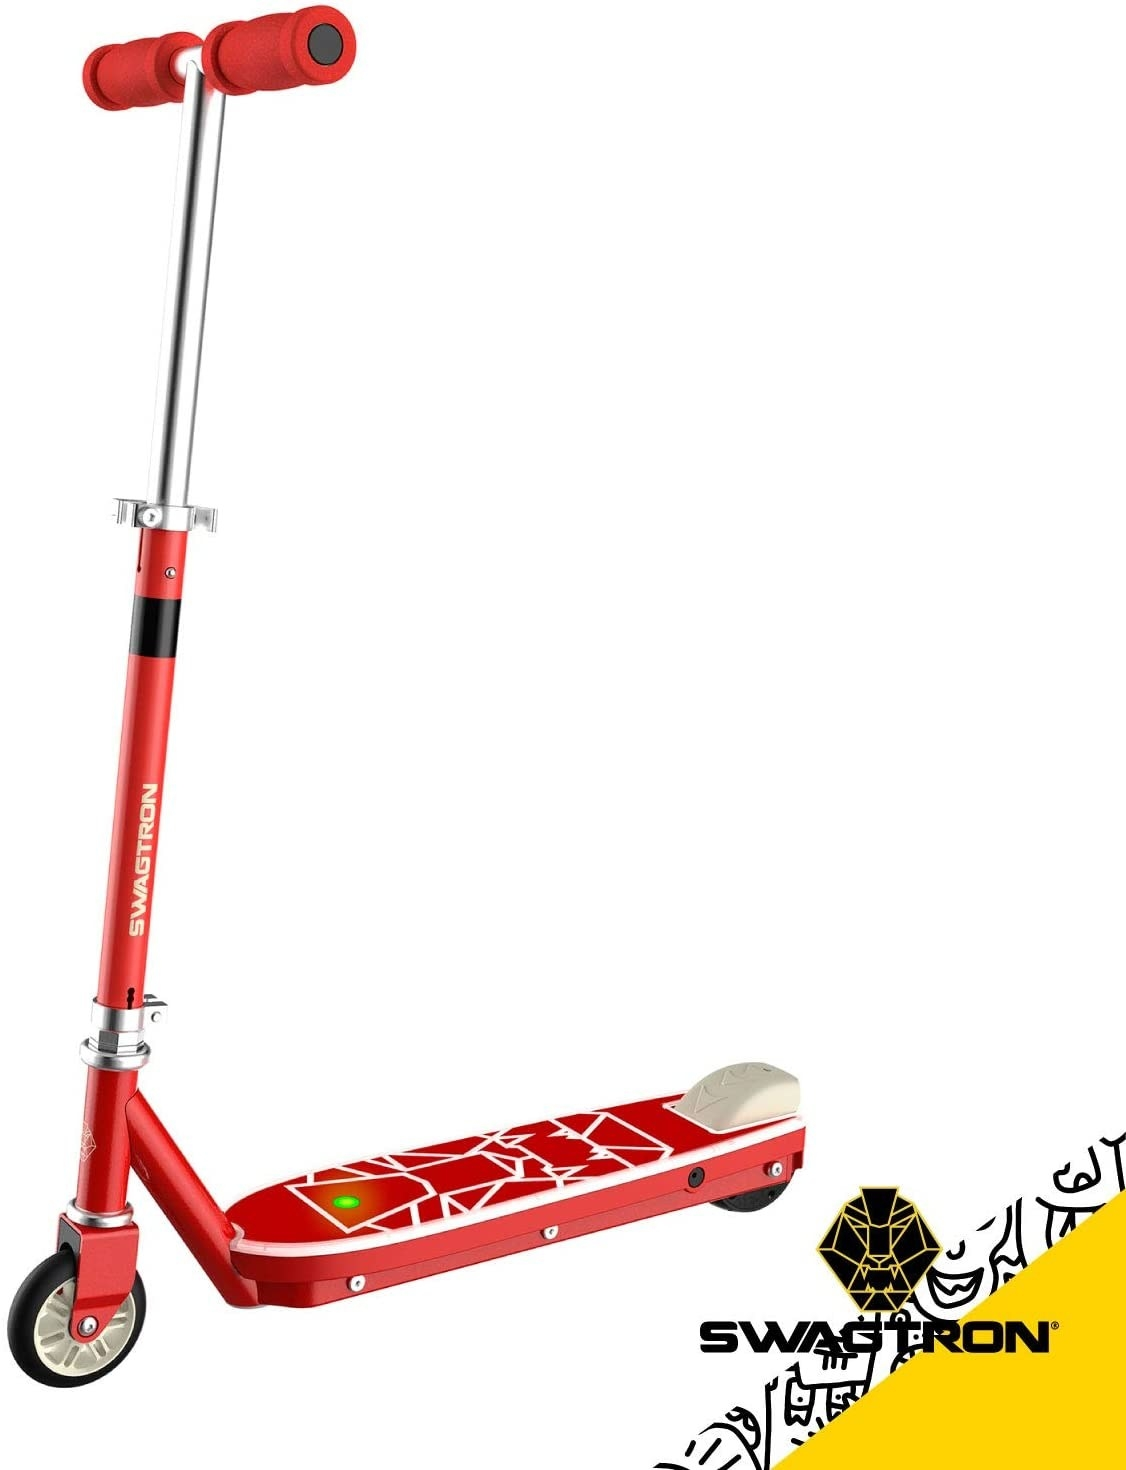 The red scooter